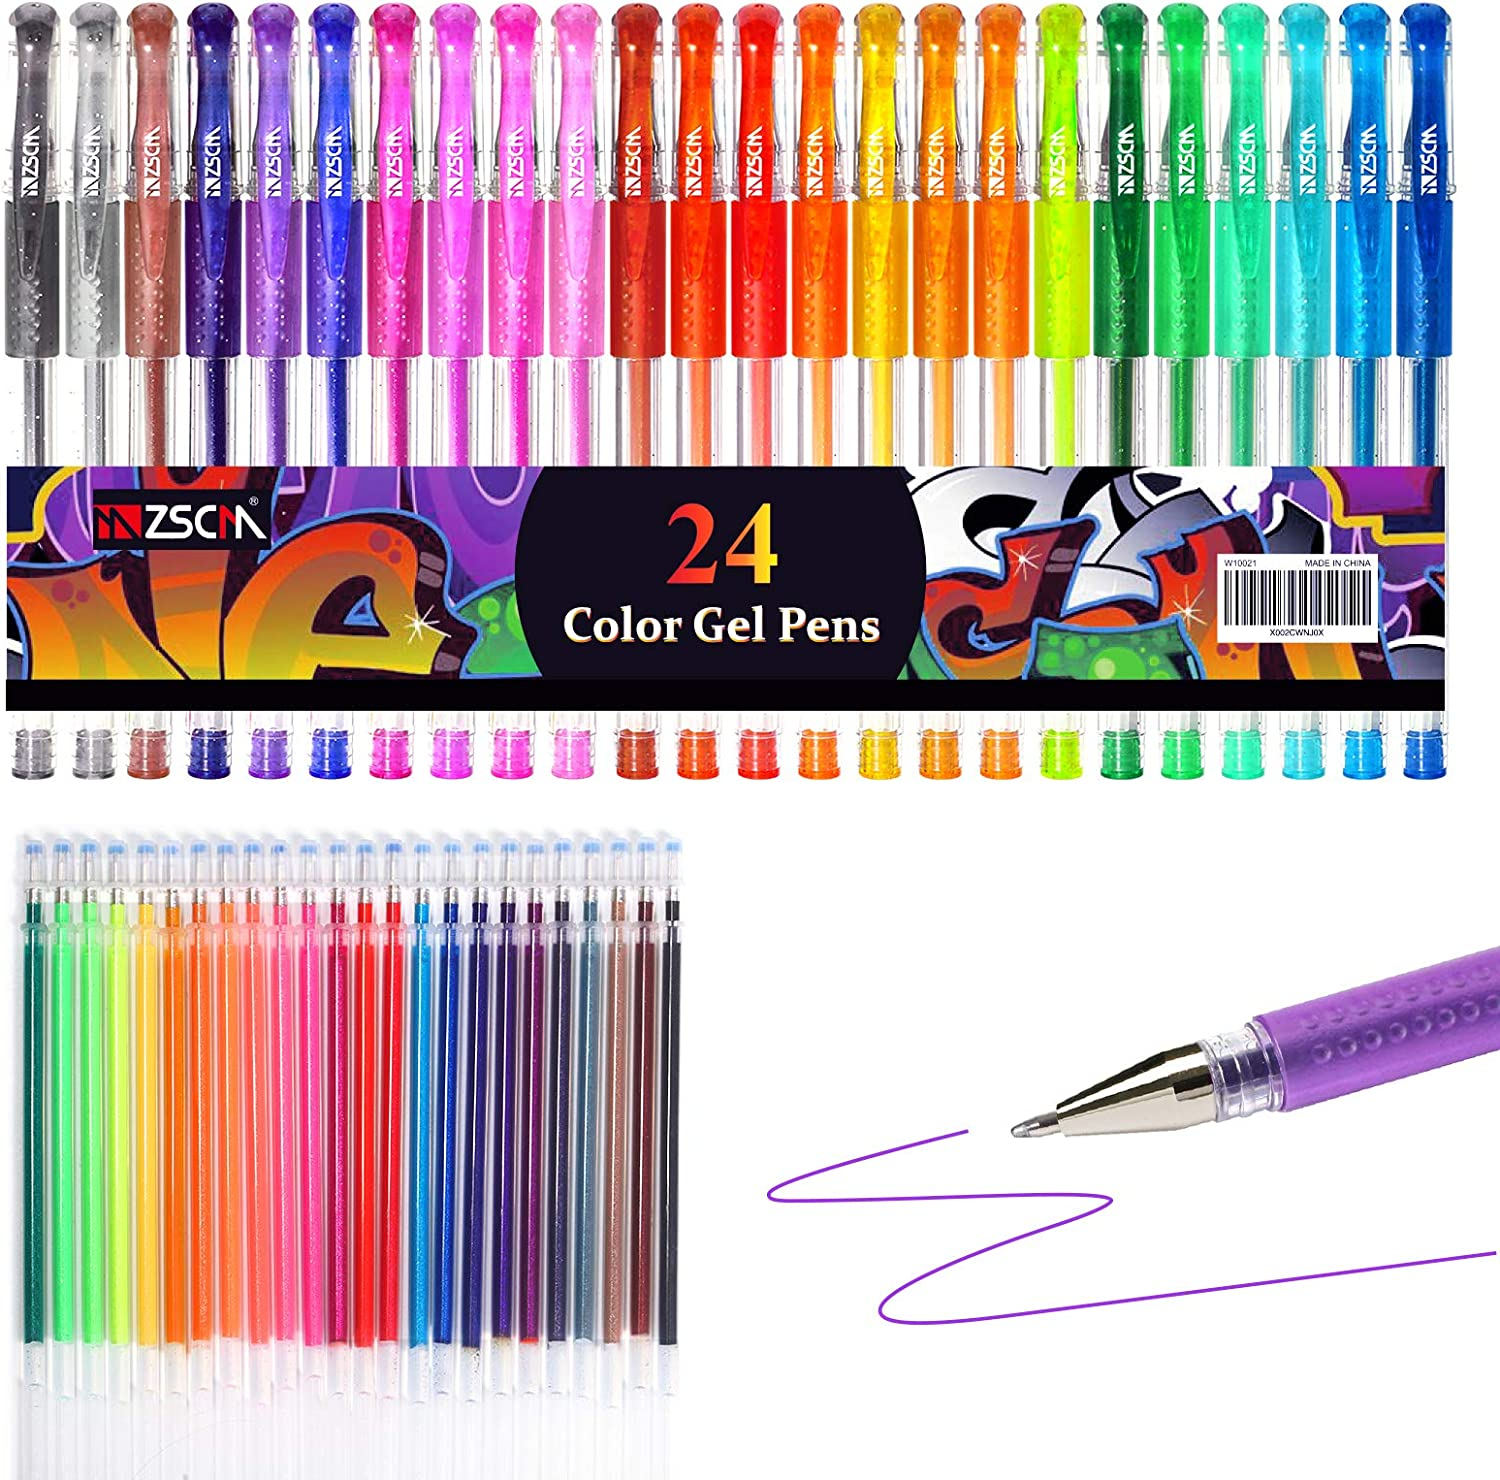 48 Color//SET Non-Toxic Gel Pen Refill Multi Colored Painting Gel Ink Ballpoint Pens Refills Rod for Handle School Stationery